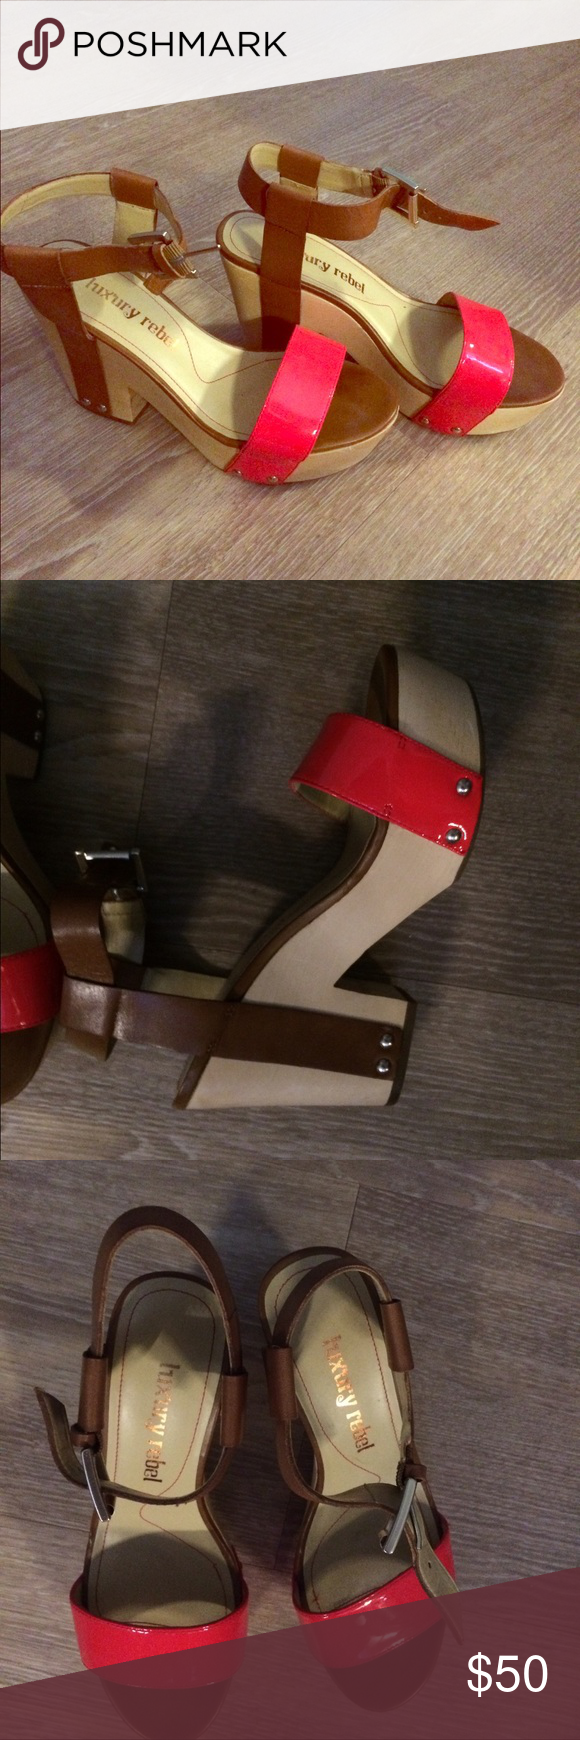 Luxury Rebel platforms Luxury Rebel platform shoes. Never worn outside. Almost as good as new! Shoes Platforms